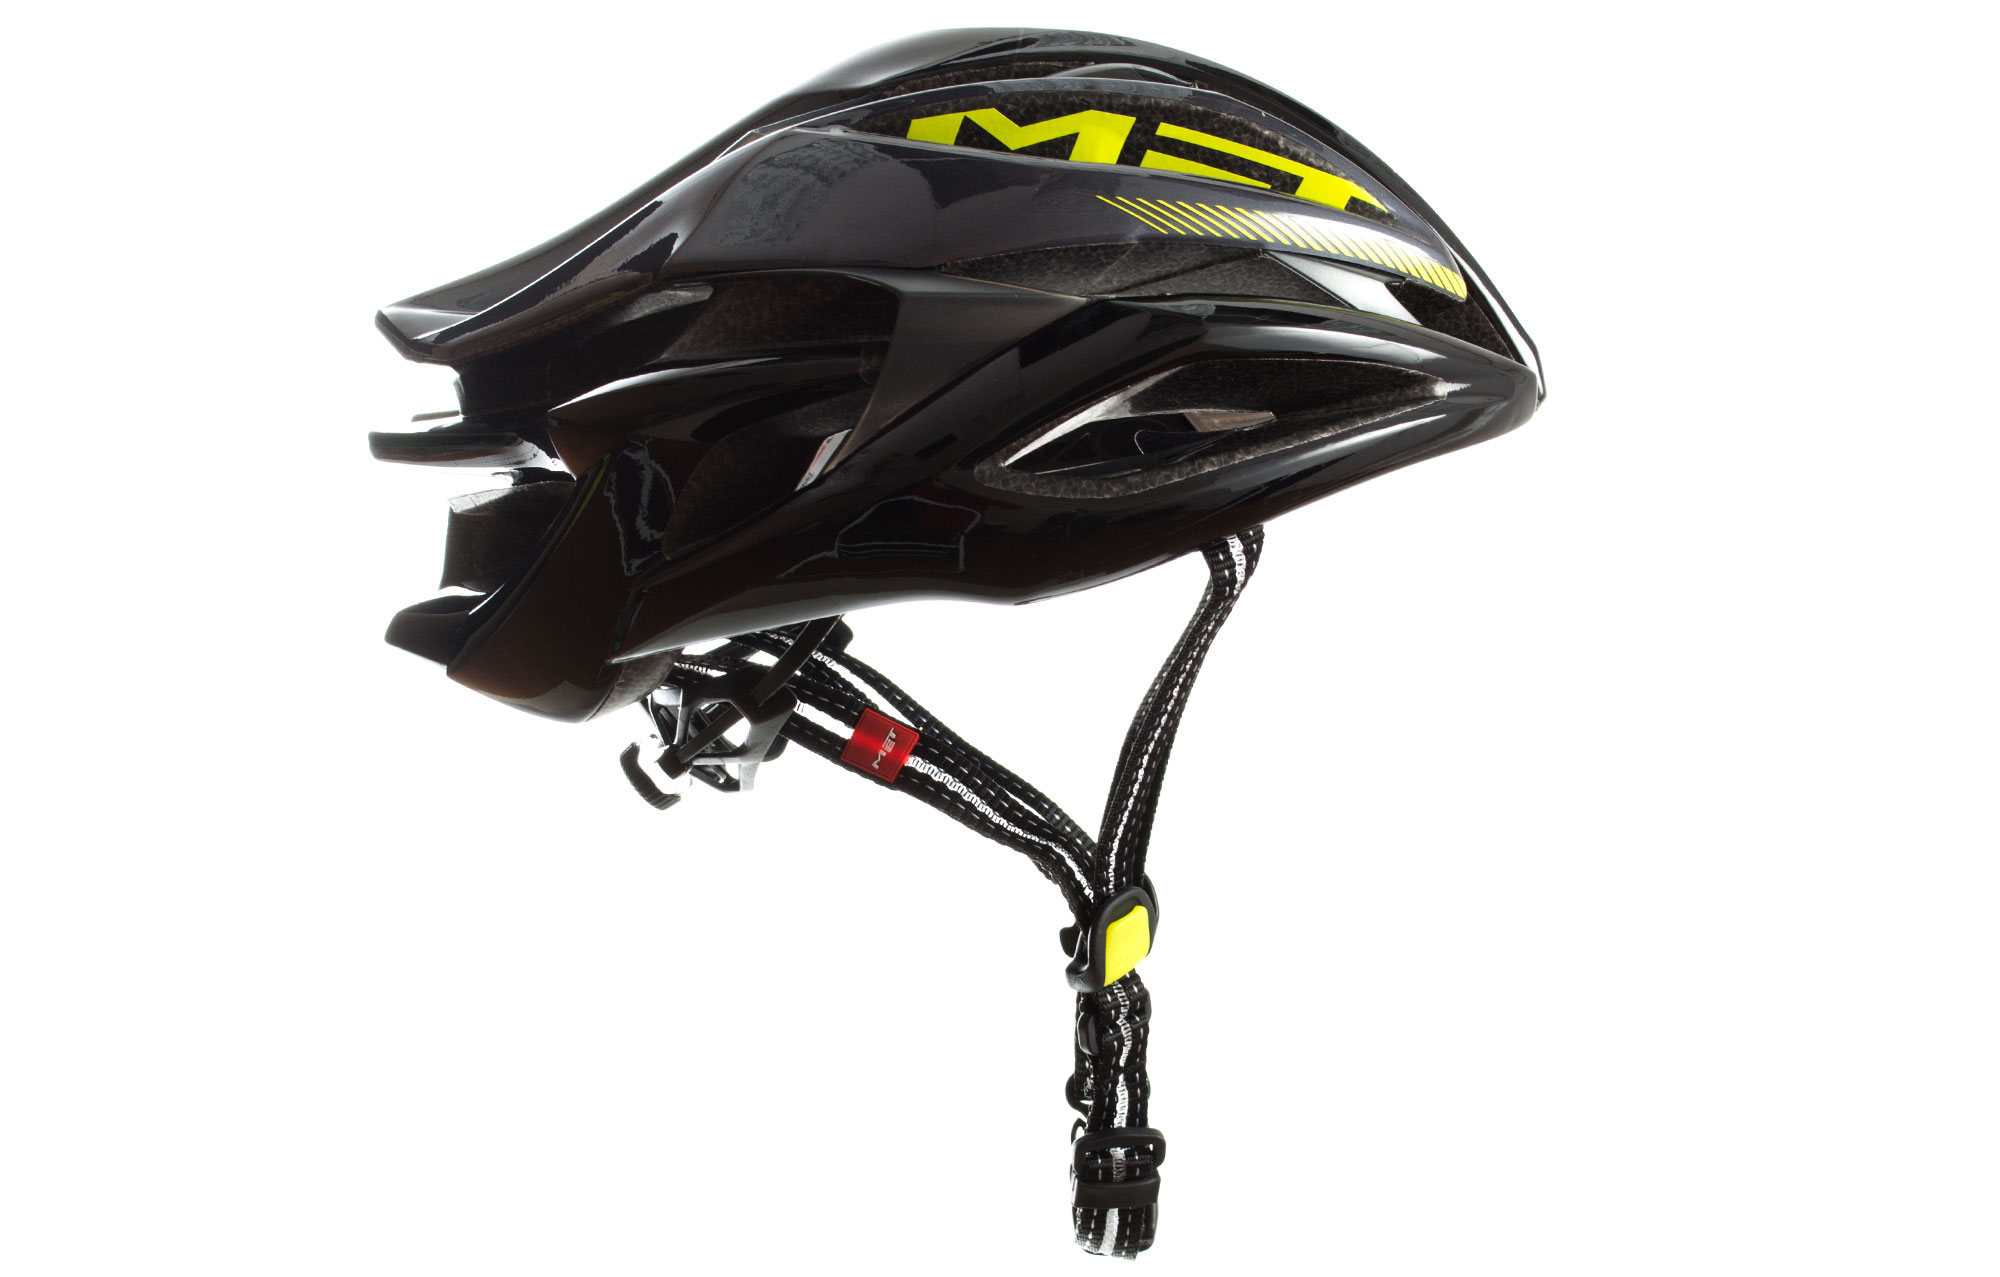 met sine thesis review We have worked hard to further evolve and improve our best road helmet our price 94 votes in total met sine thesis road bicycle helmet review made in italy in a.